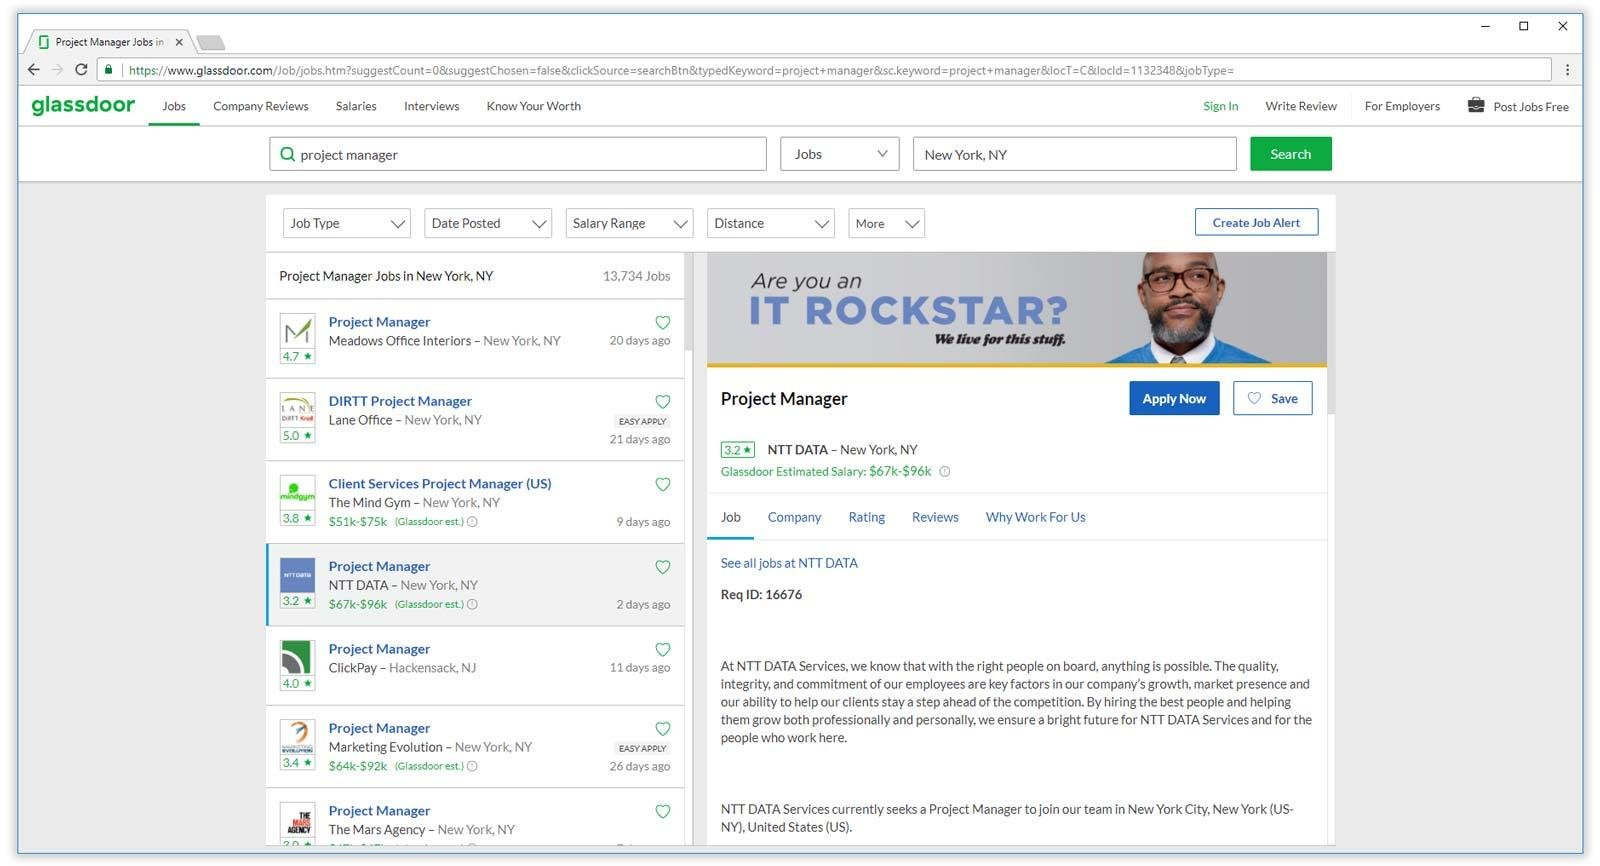 best job search engines boards for finding resume websites glassdoor inventory objective Resume Best Resume Search Websites